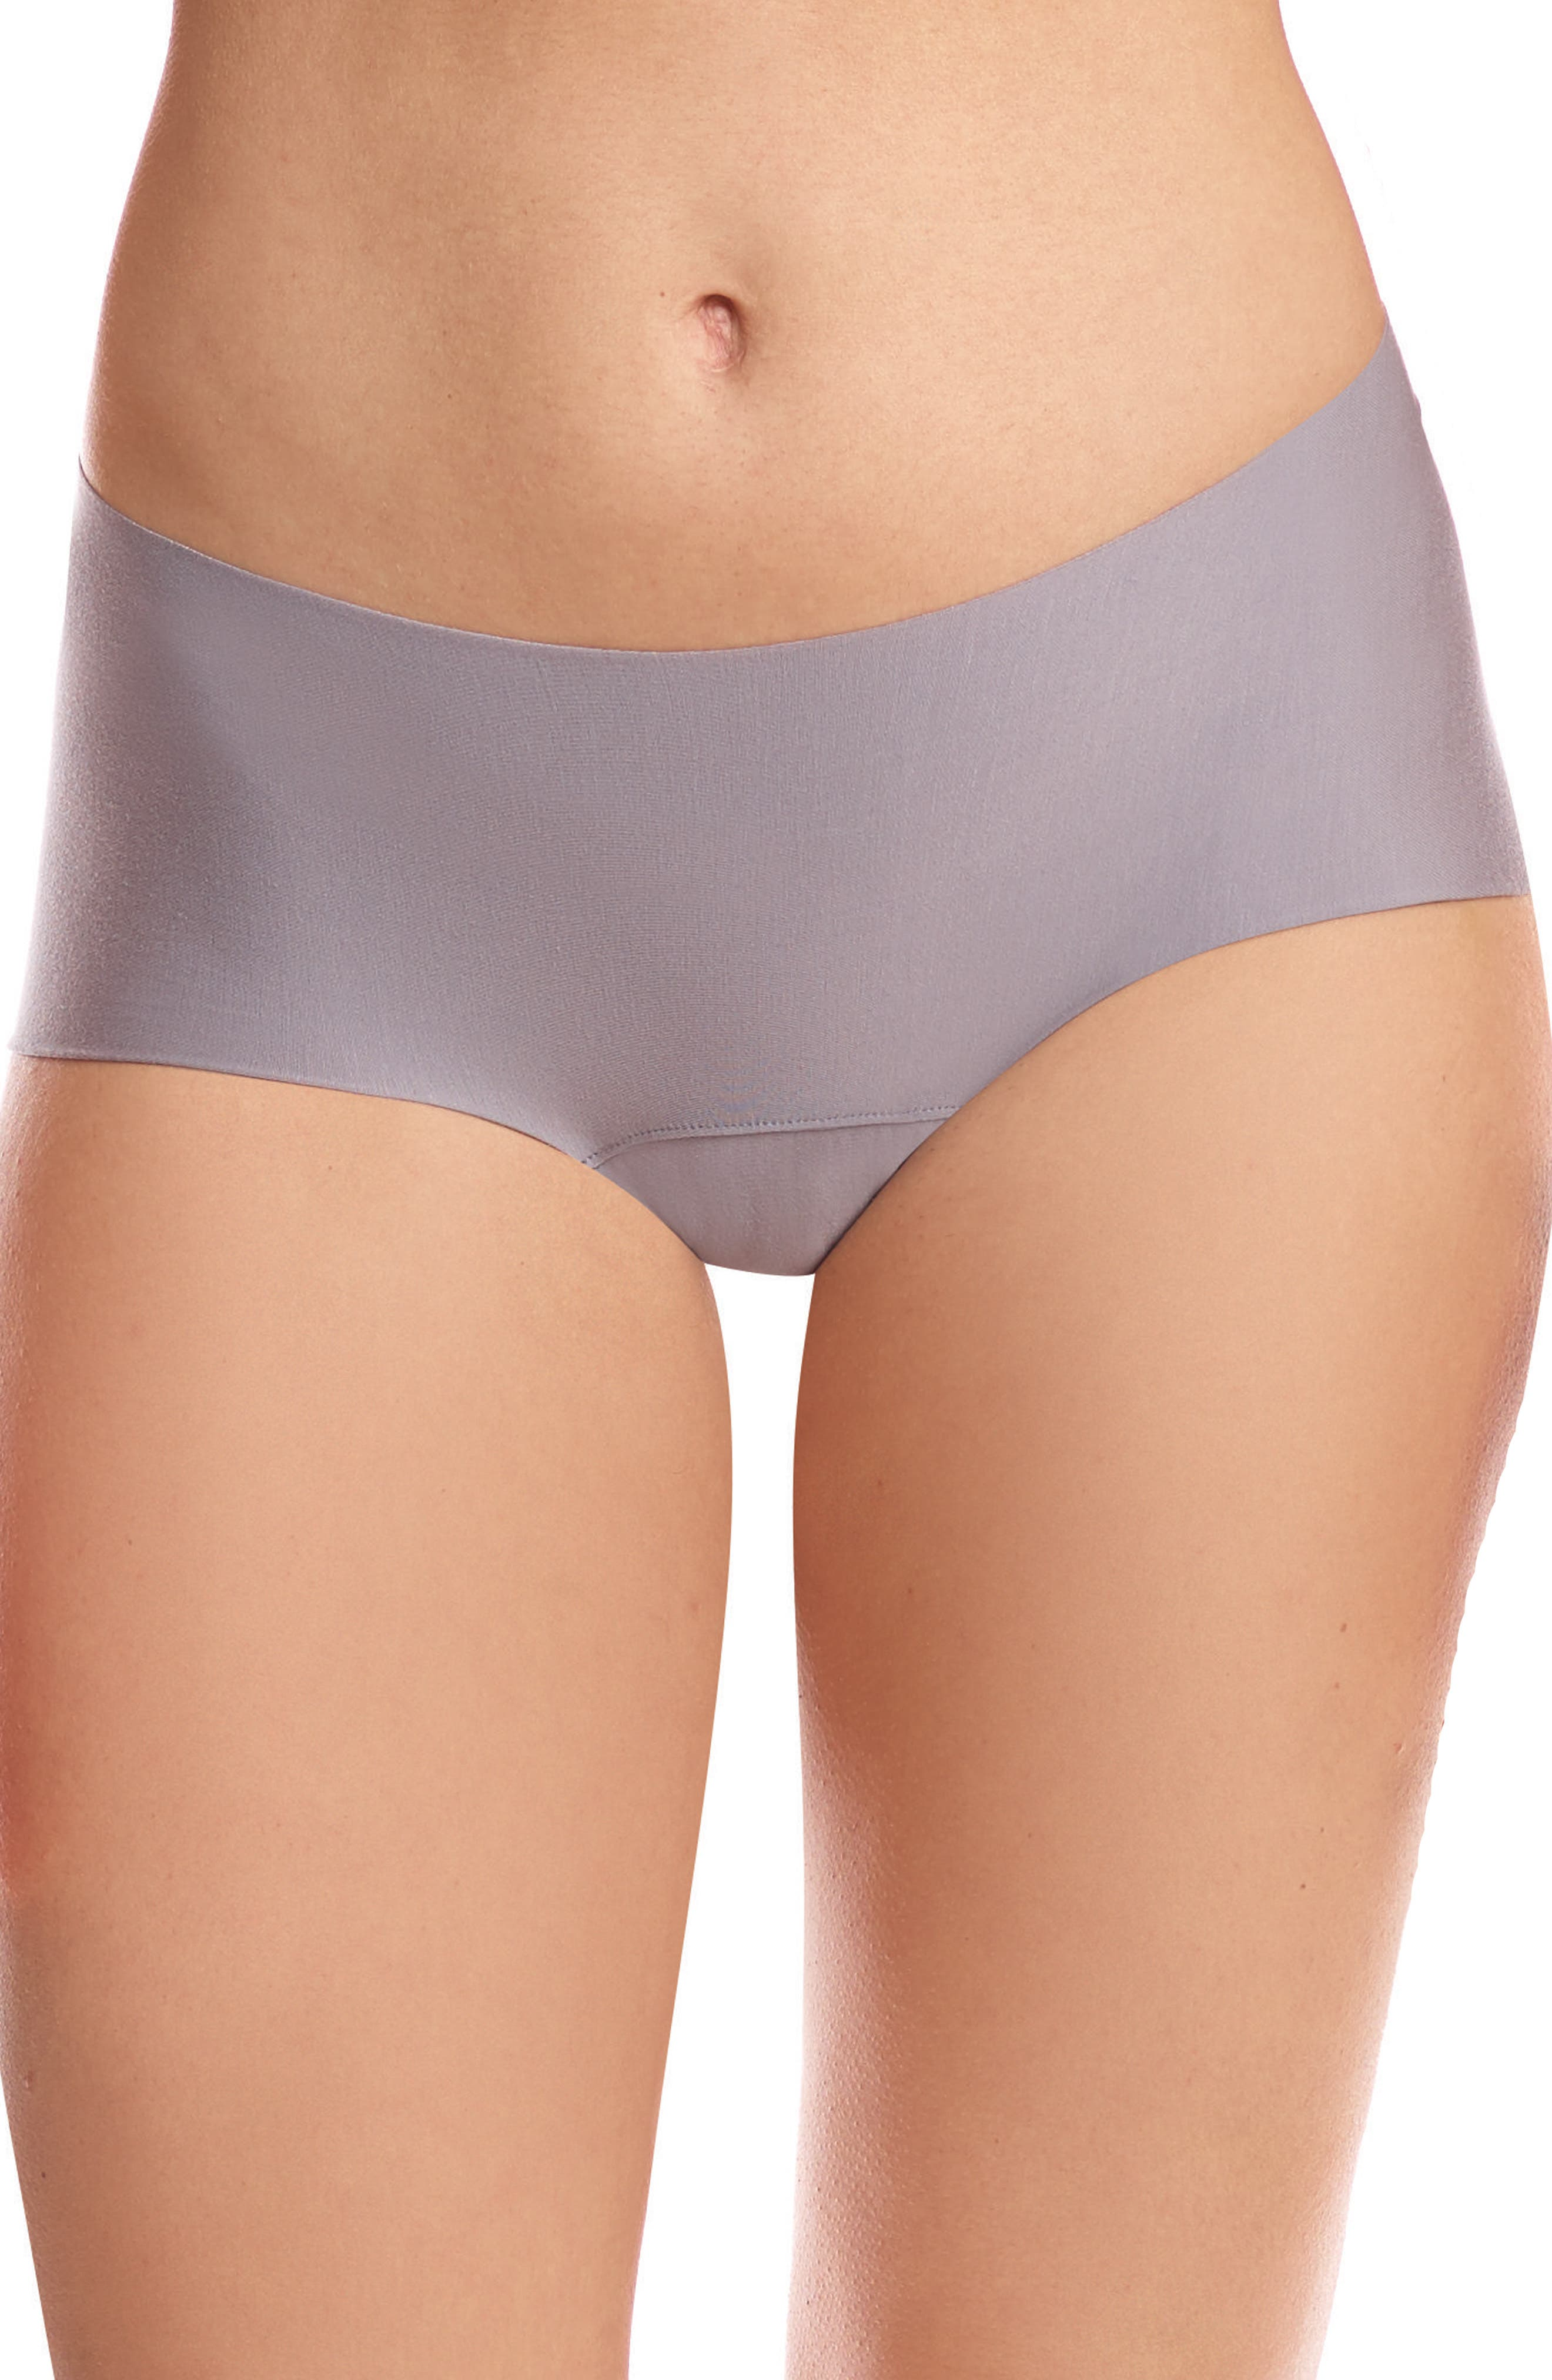 Butter Seamless Hipster Panties,                         Main,                         color, Stone